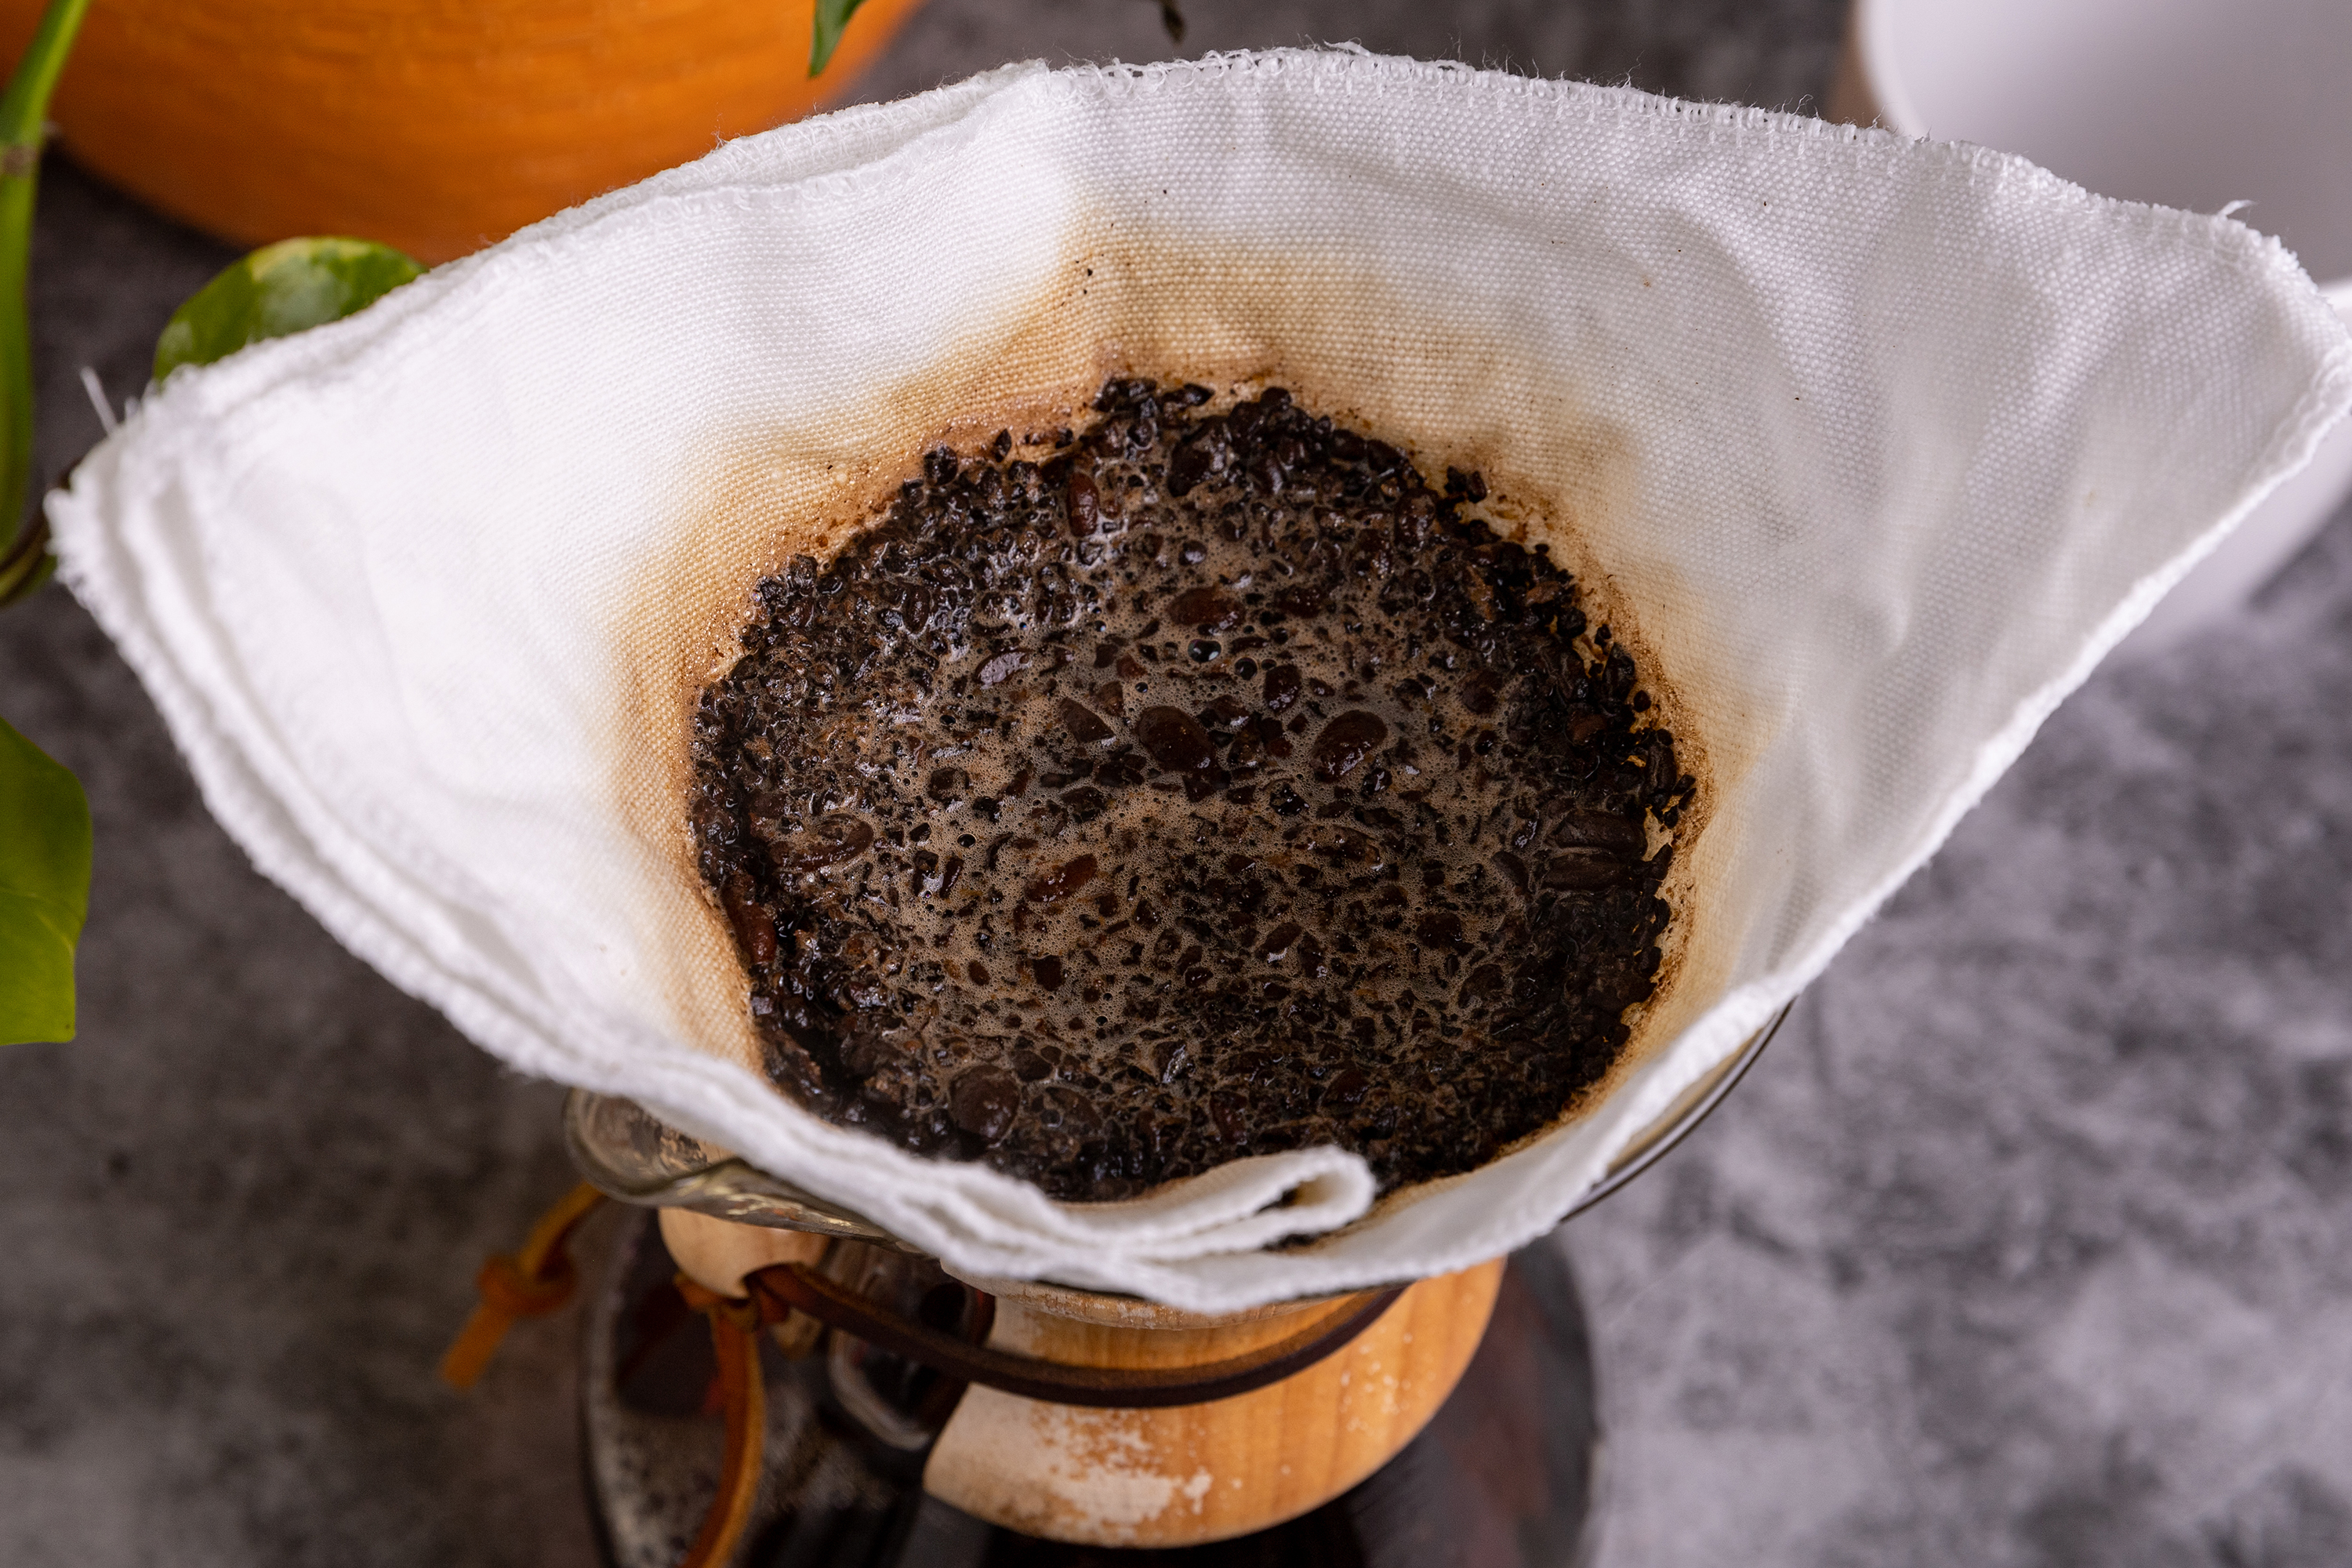 Used coffee grounds in a pour over filter.